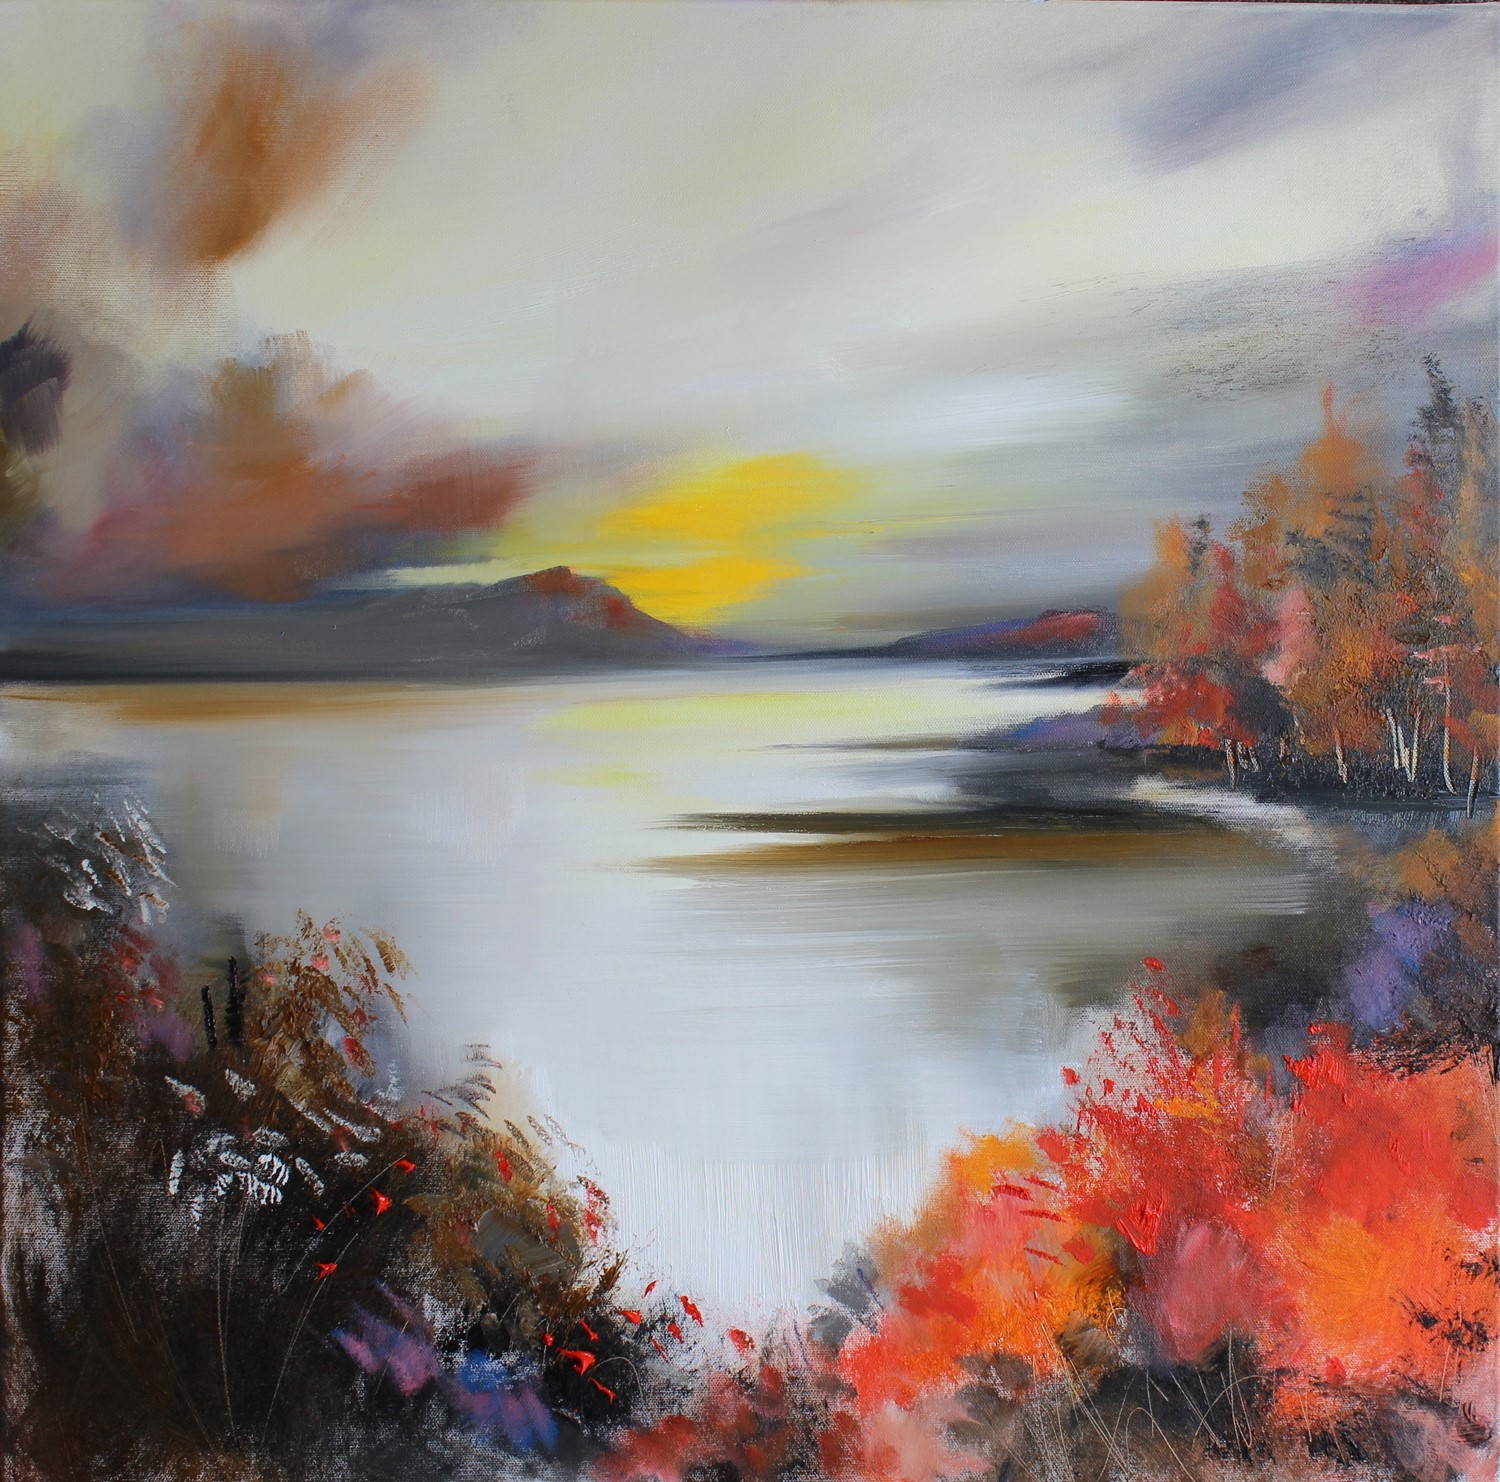 'A Morning in Autumn' by artist Rosanne Barr